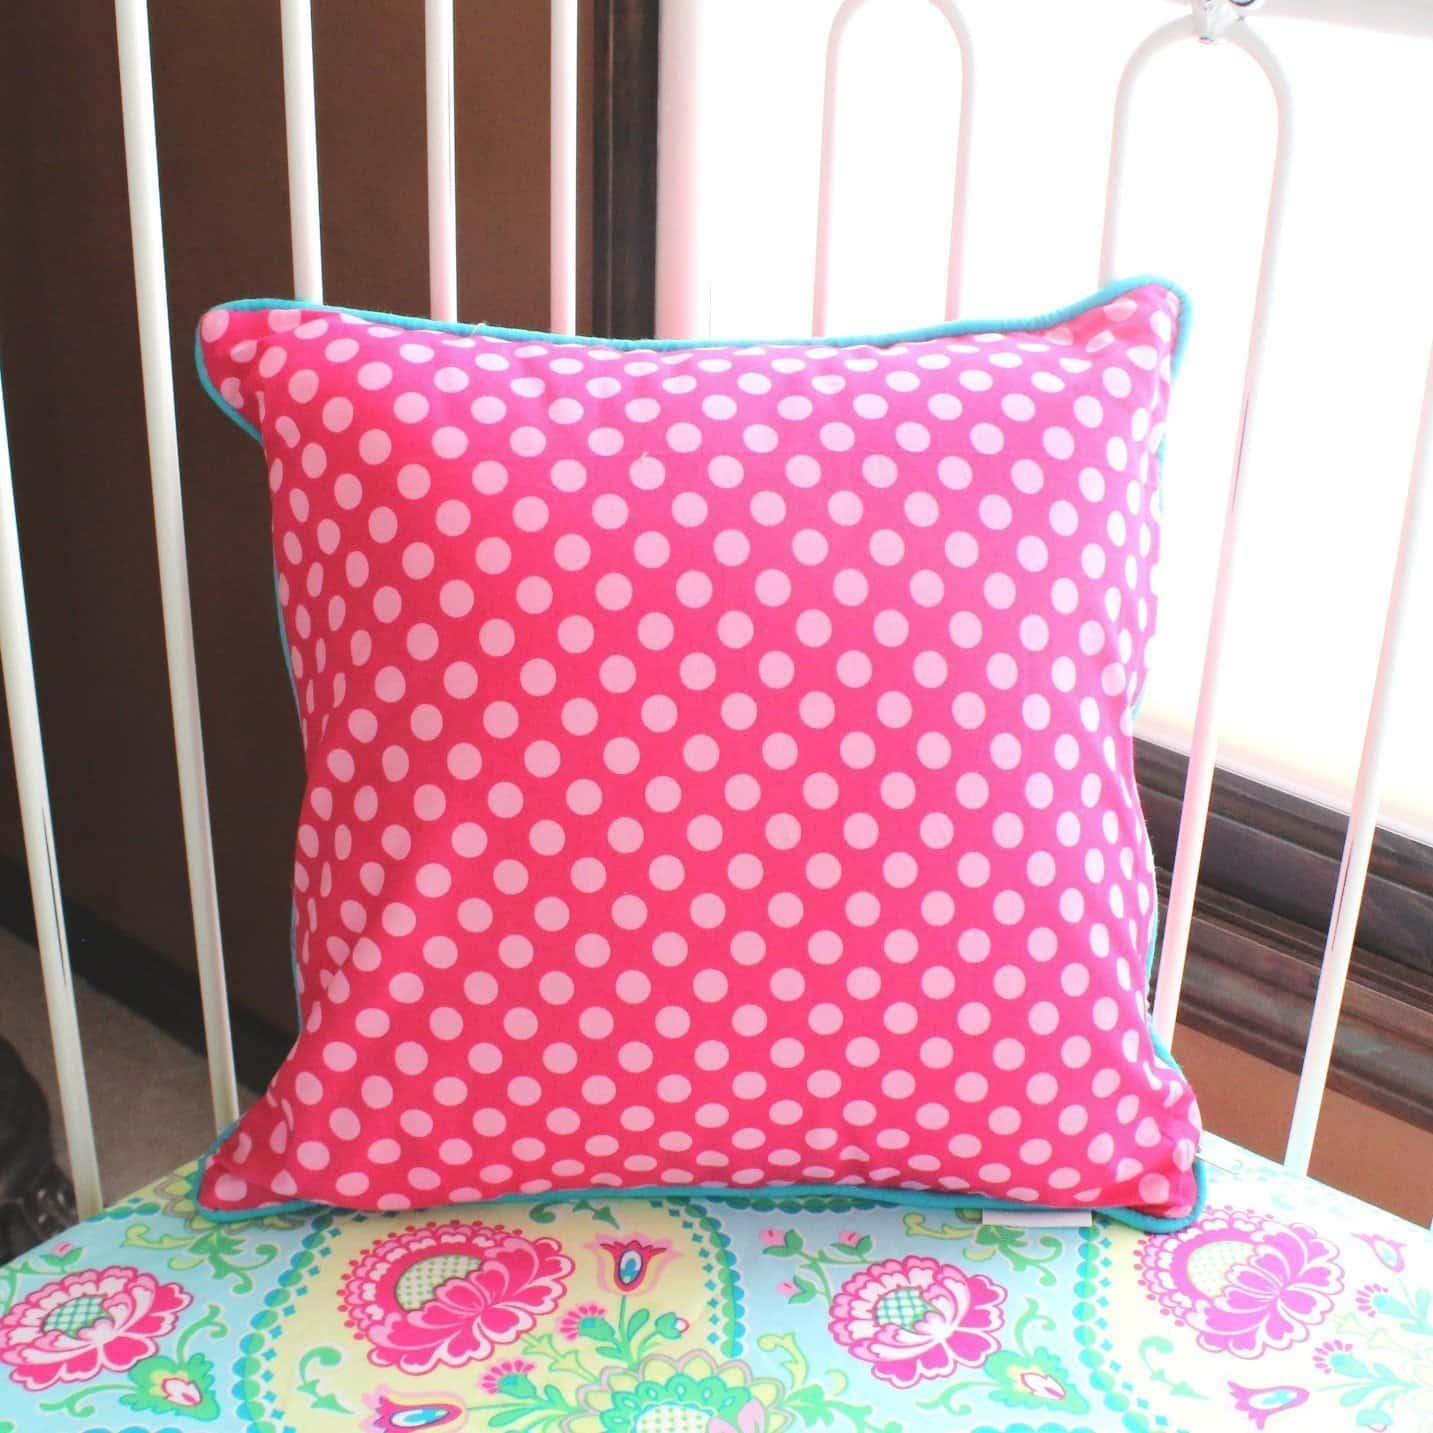 Square Pillows-Jack and Jill Boutique-Throw Pillow Cover and Insert | Confection Dots